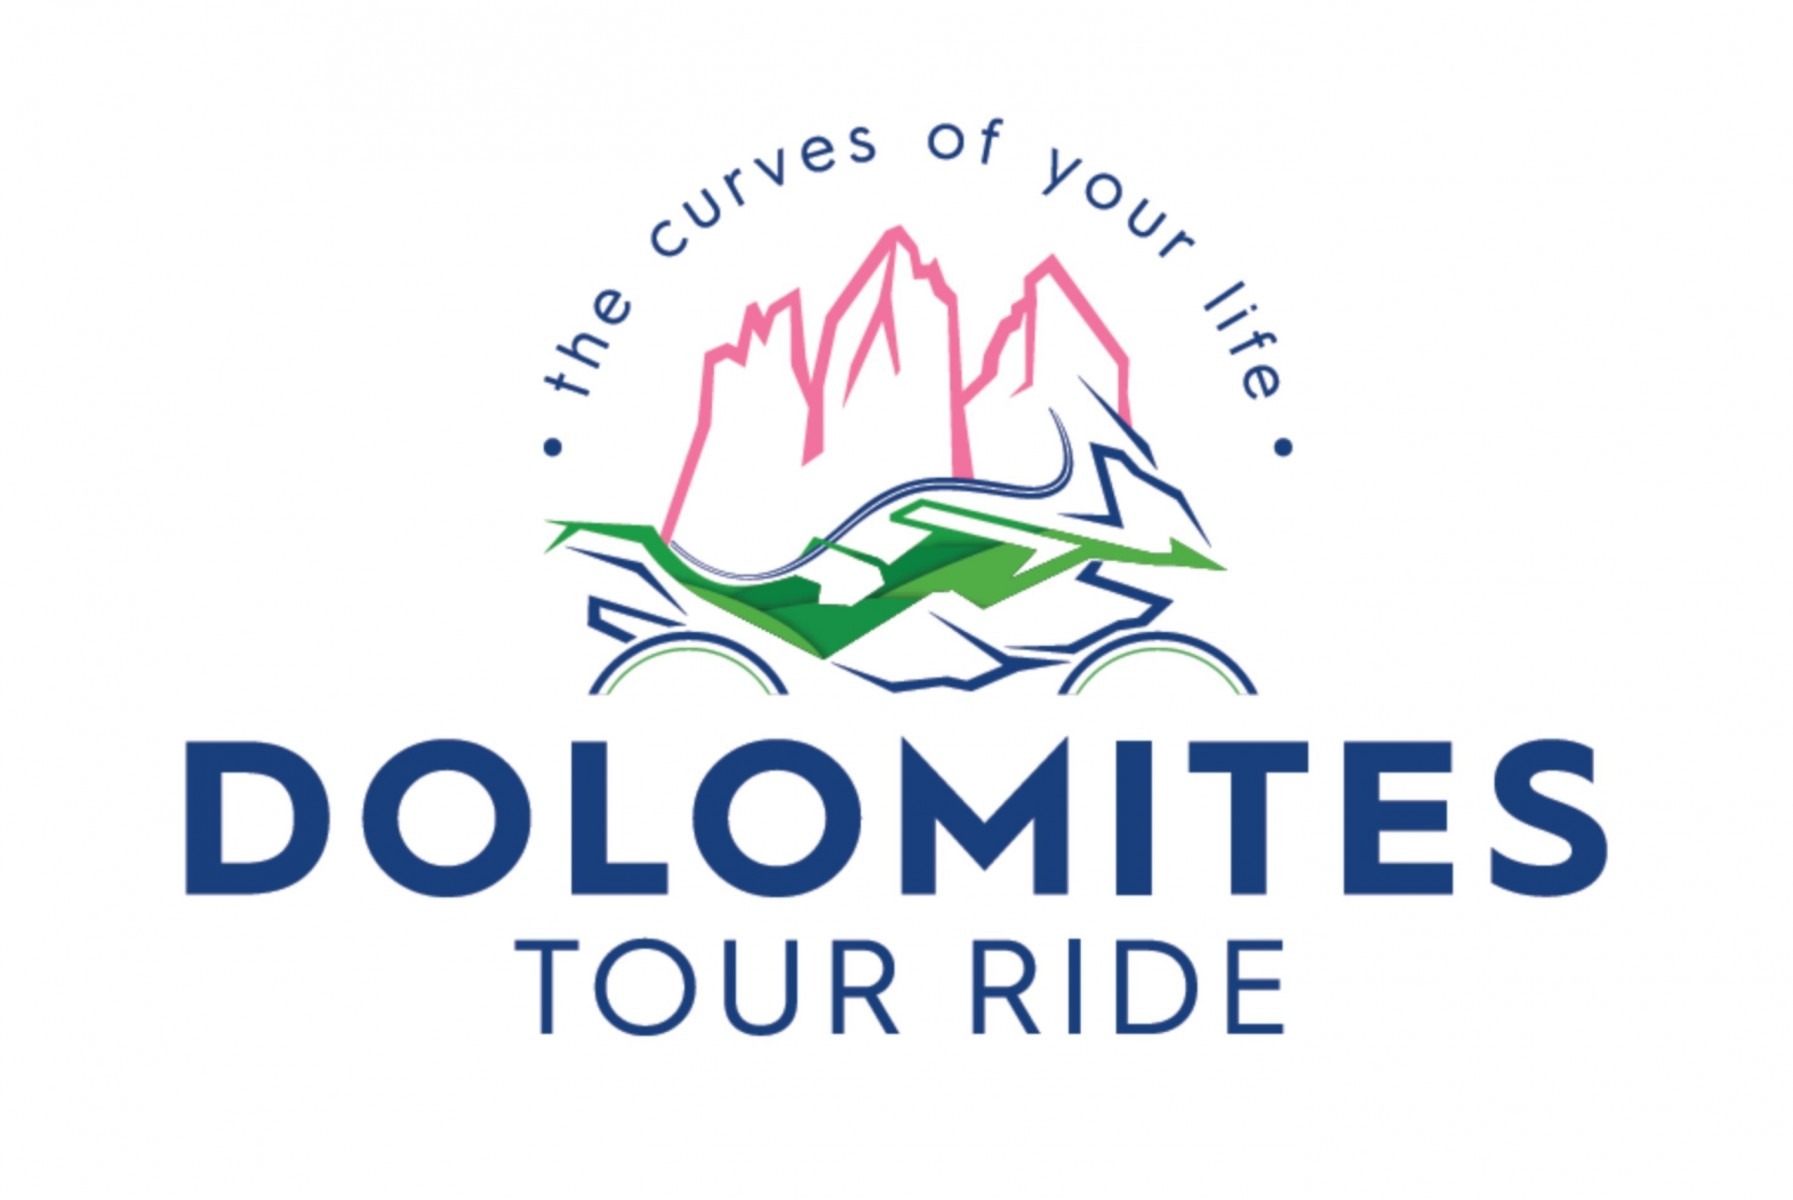 Dolomites Tour Ride